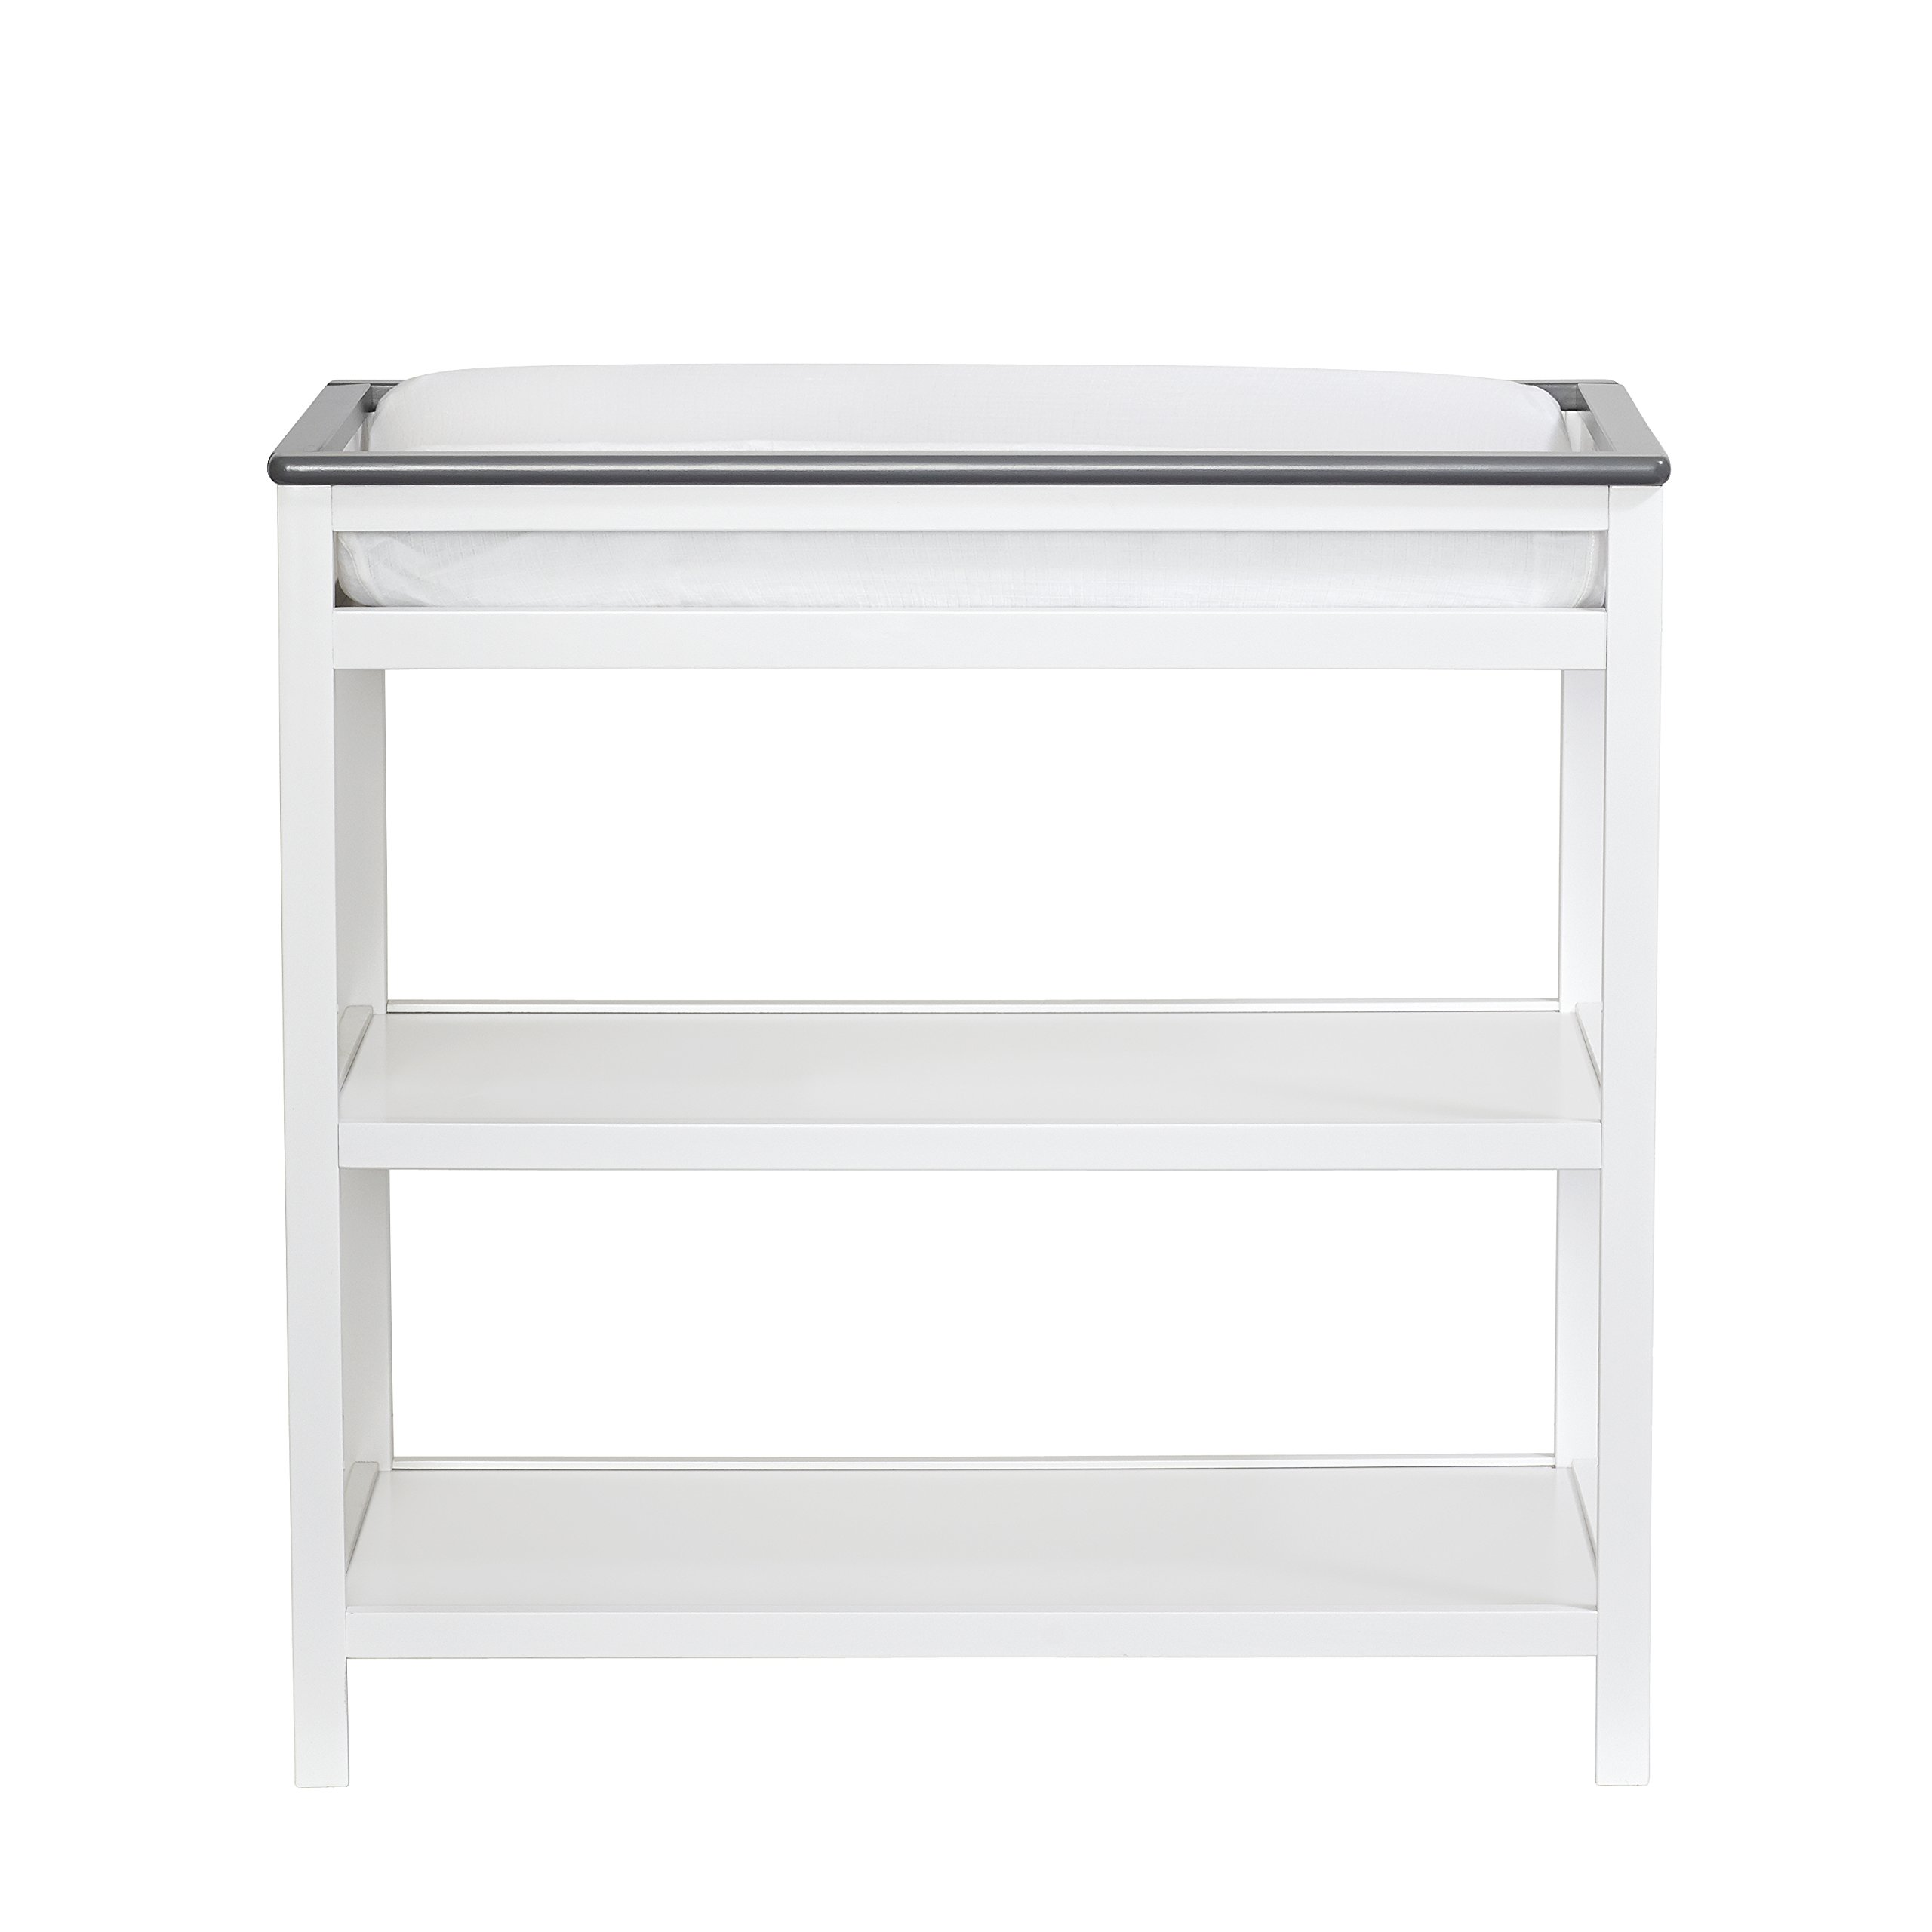 Suite Bebe Brooklyn Changing Table White/Grey